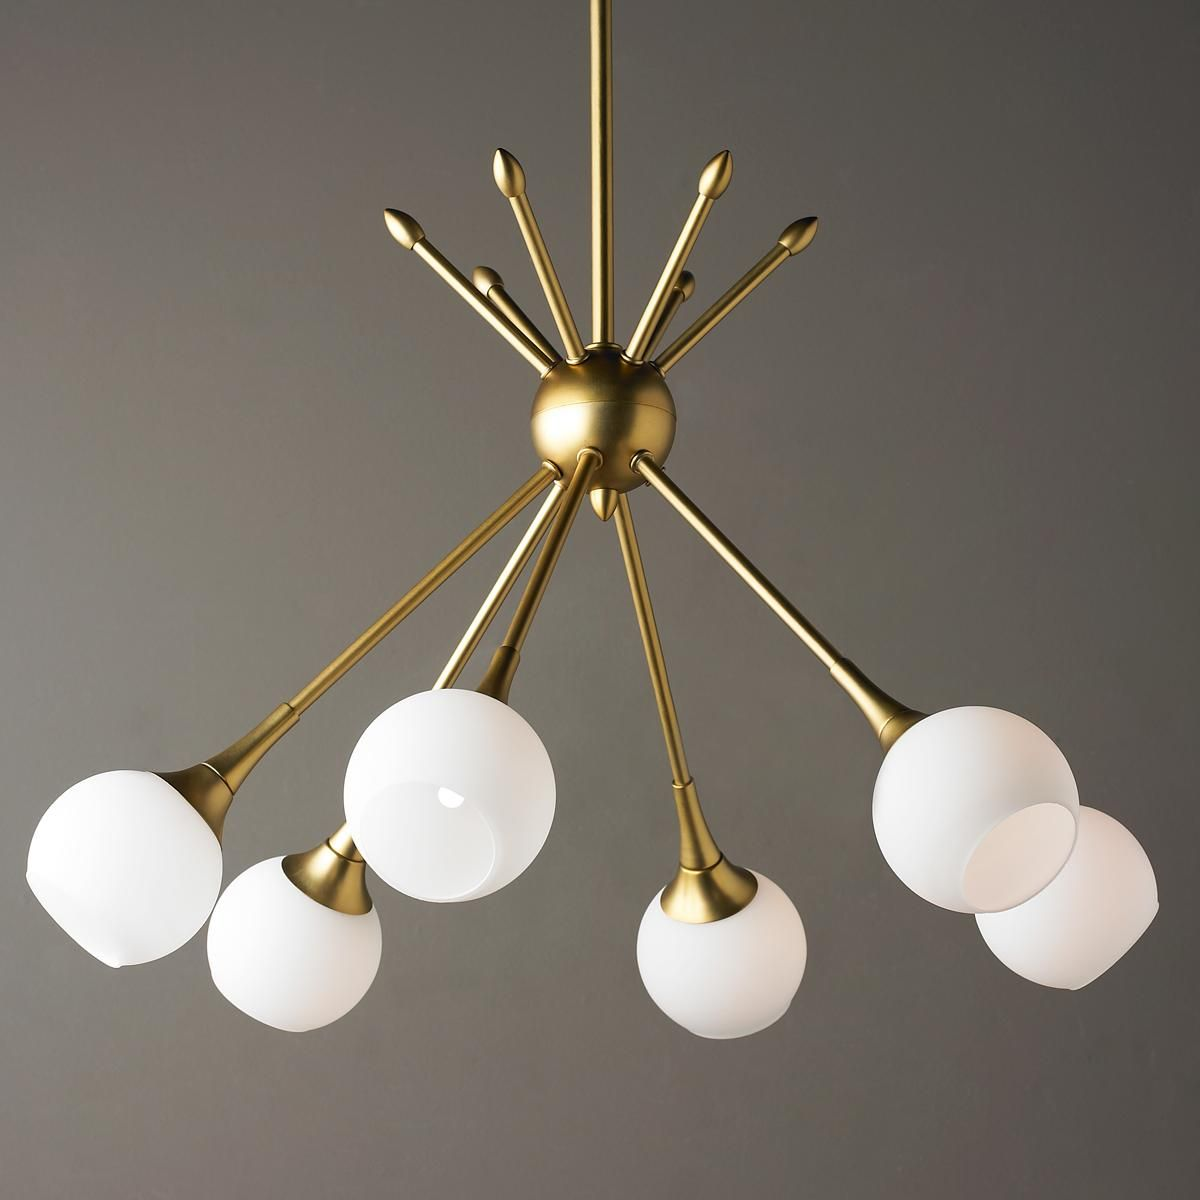 Mid century modern mobile chandelier 6 light iluminacin luces mid century modern mobile chandelier 6 light aloadofball Images